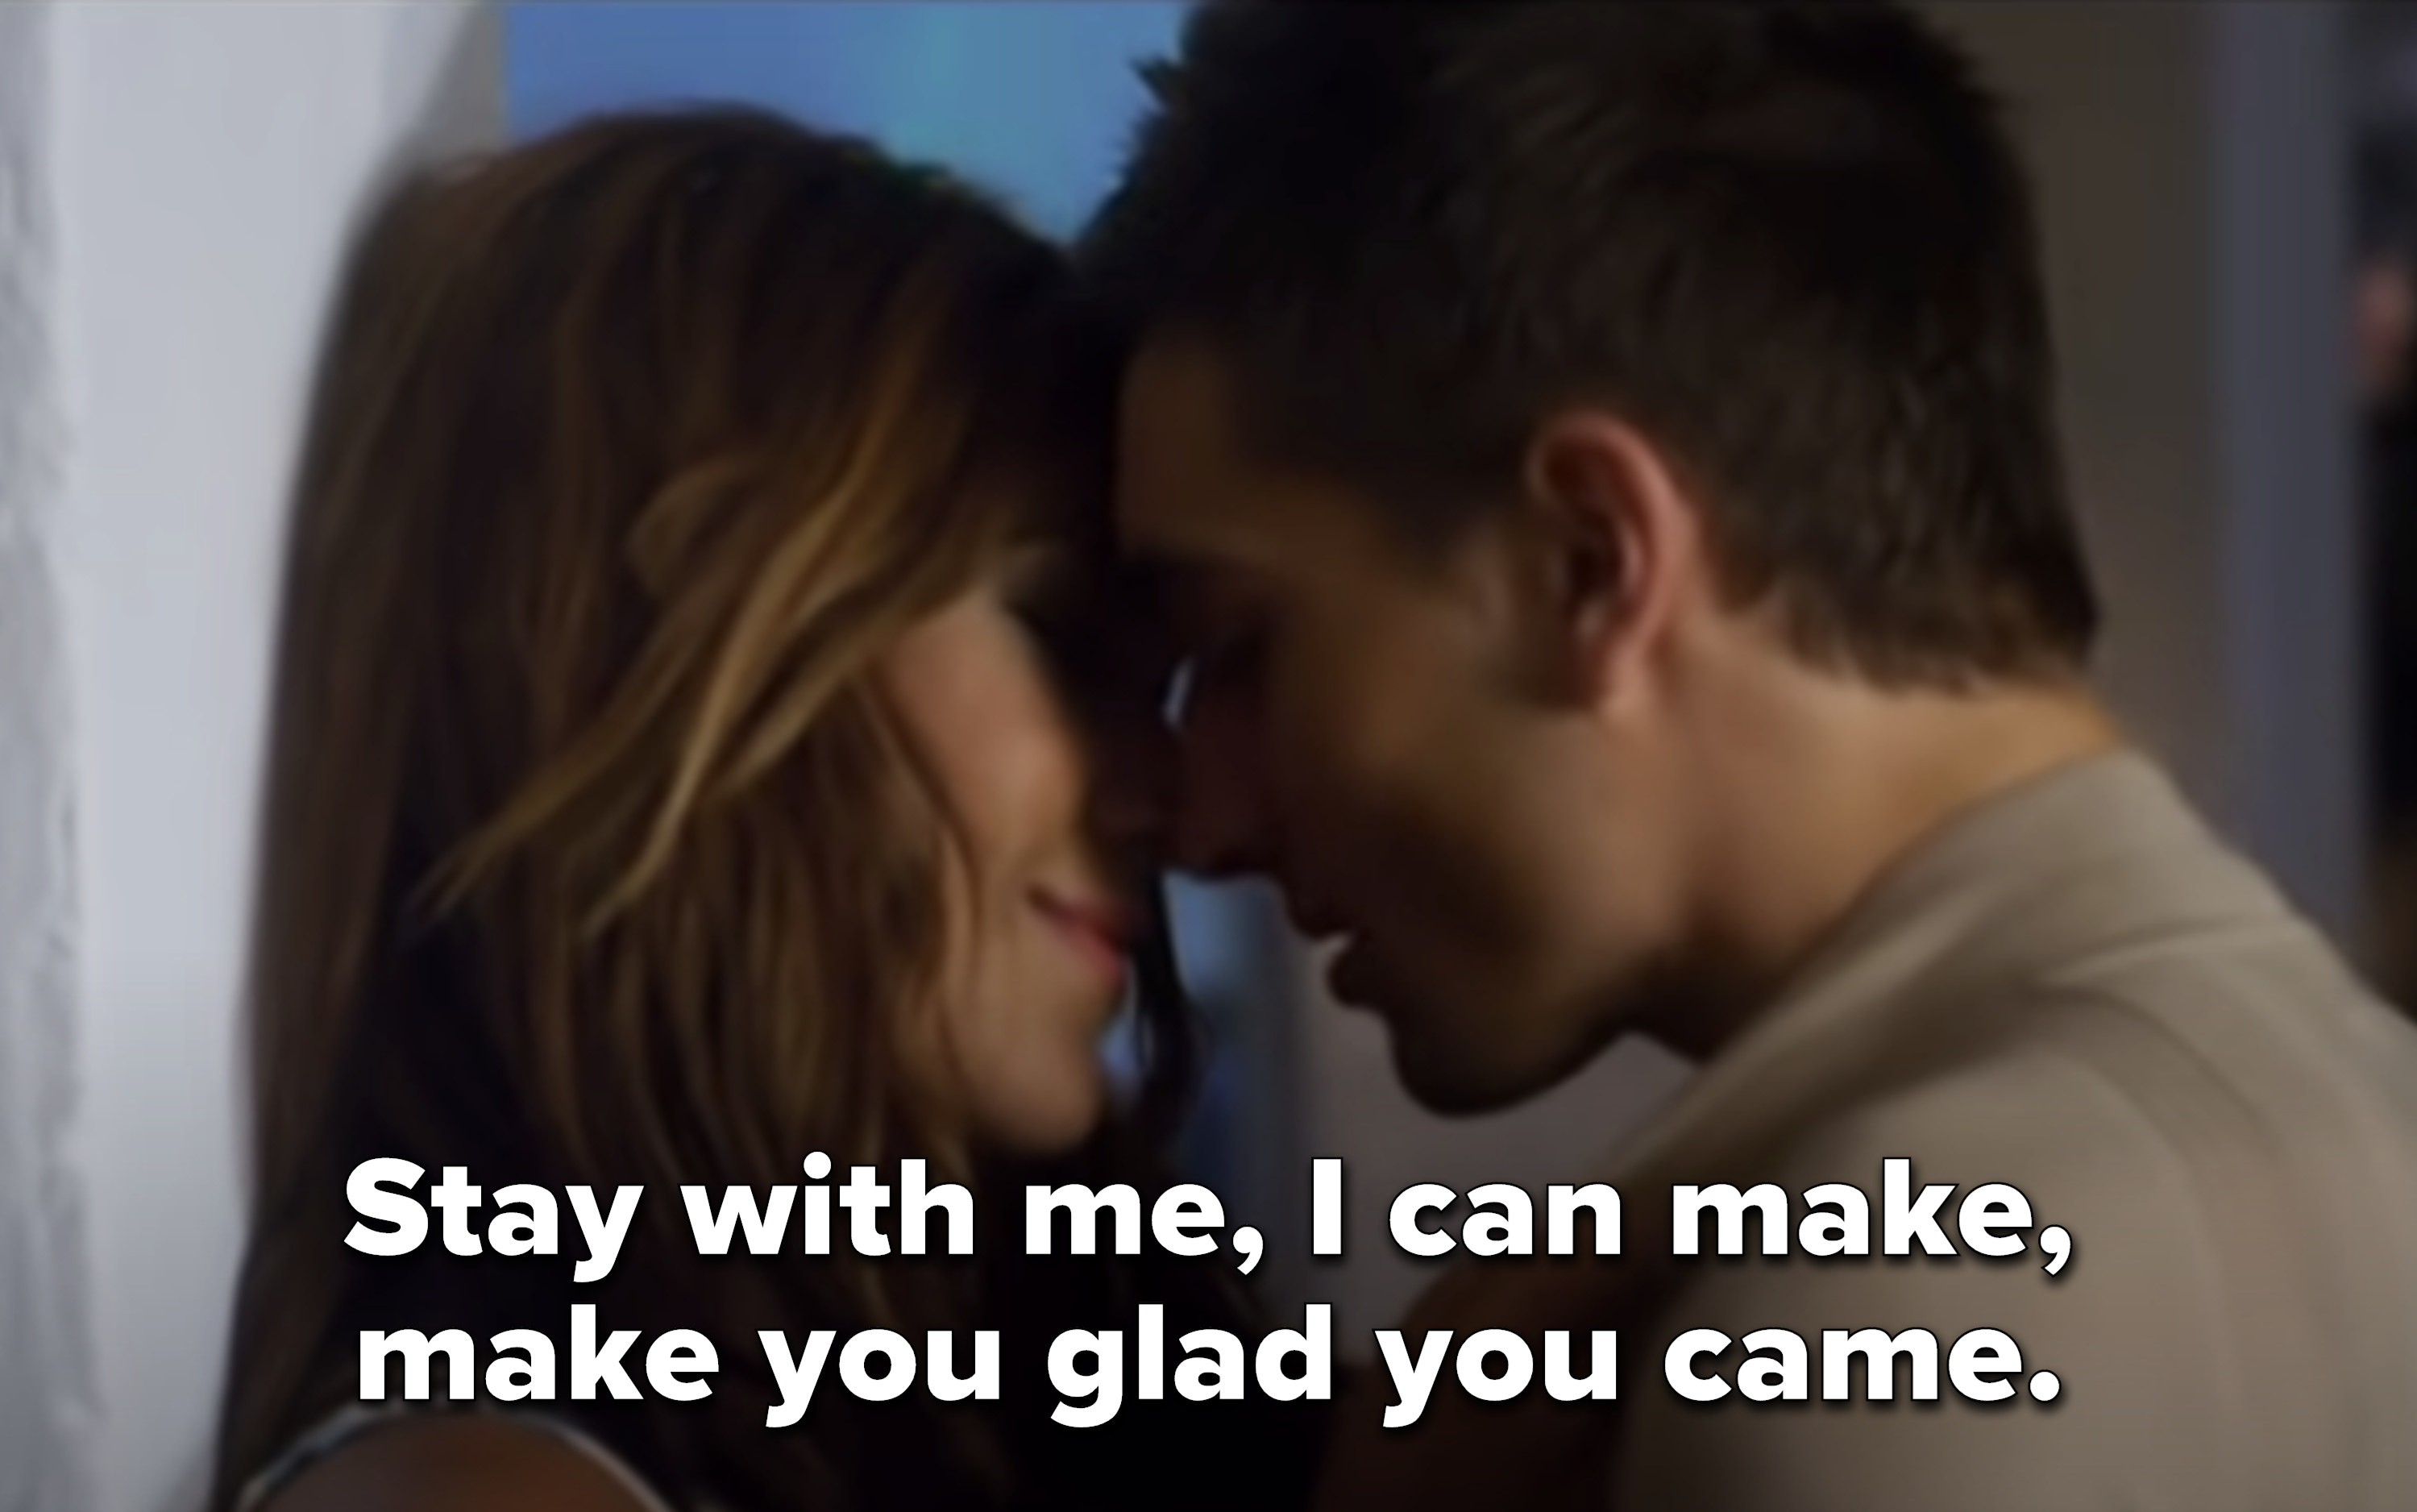 """a man and a woman are about to kiss while the song lyrics say """"Stay with me, I can make, make you glad you came"""""""